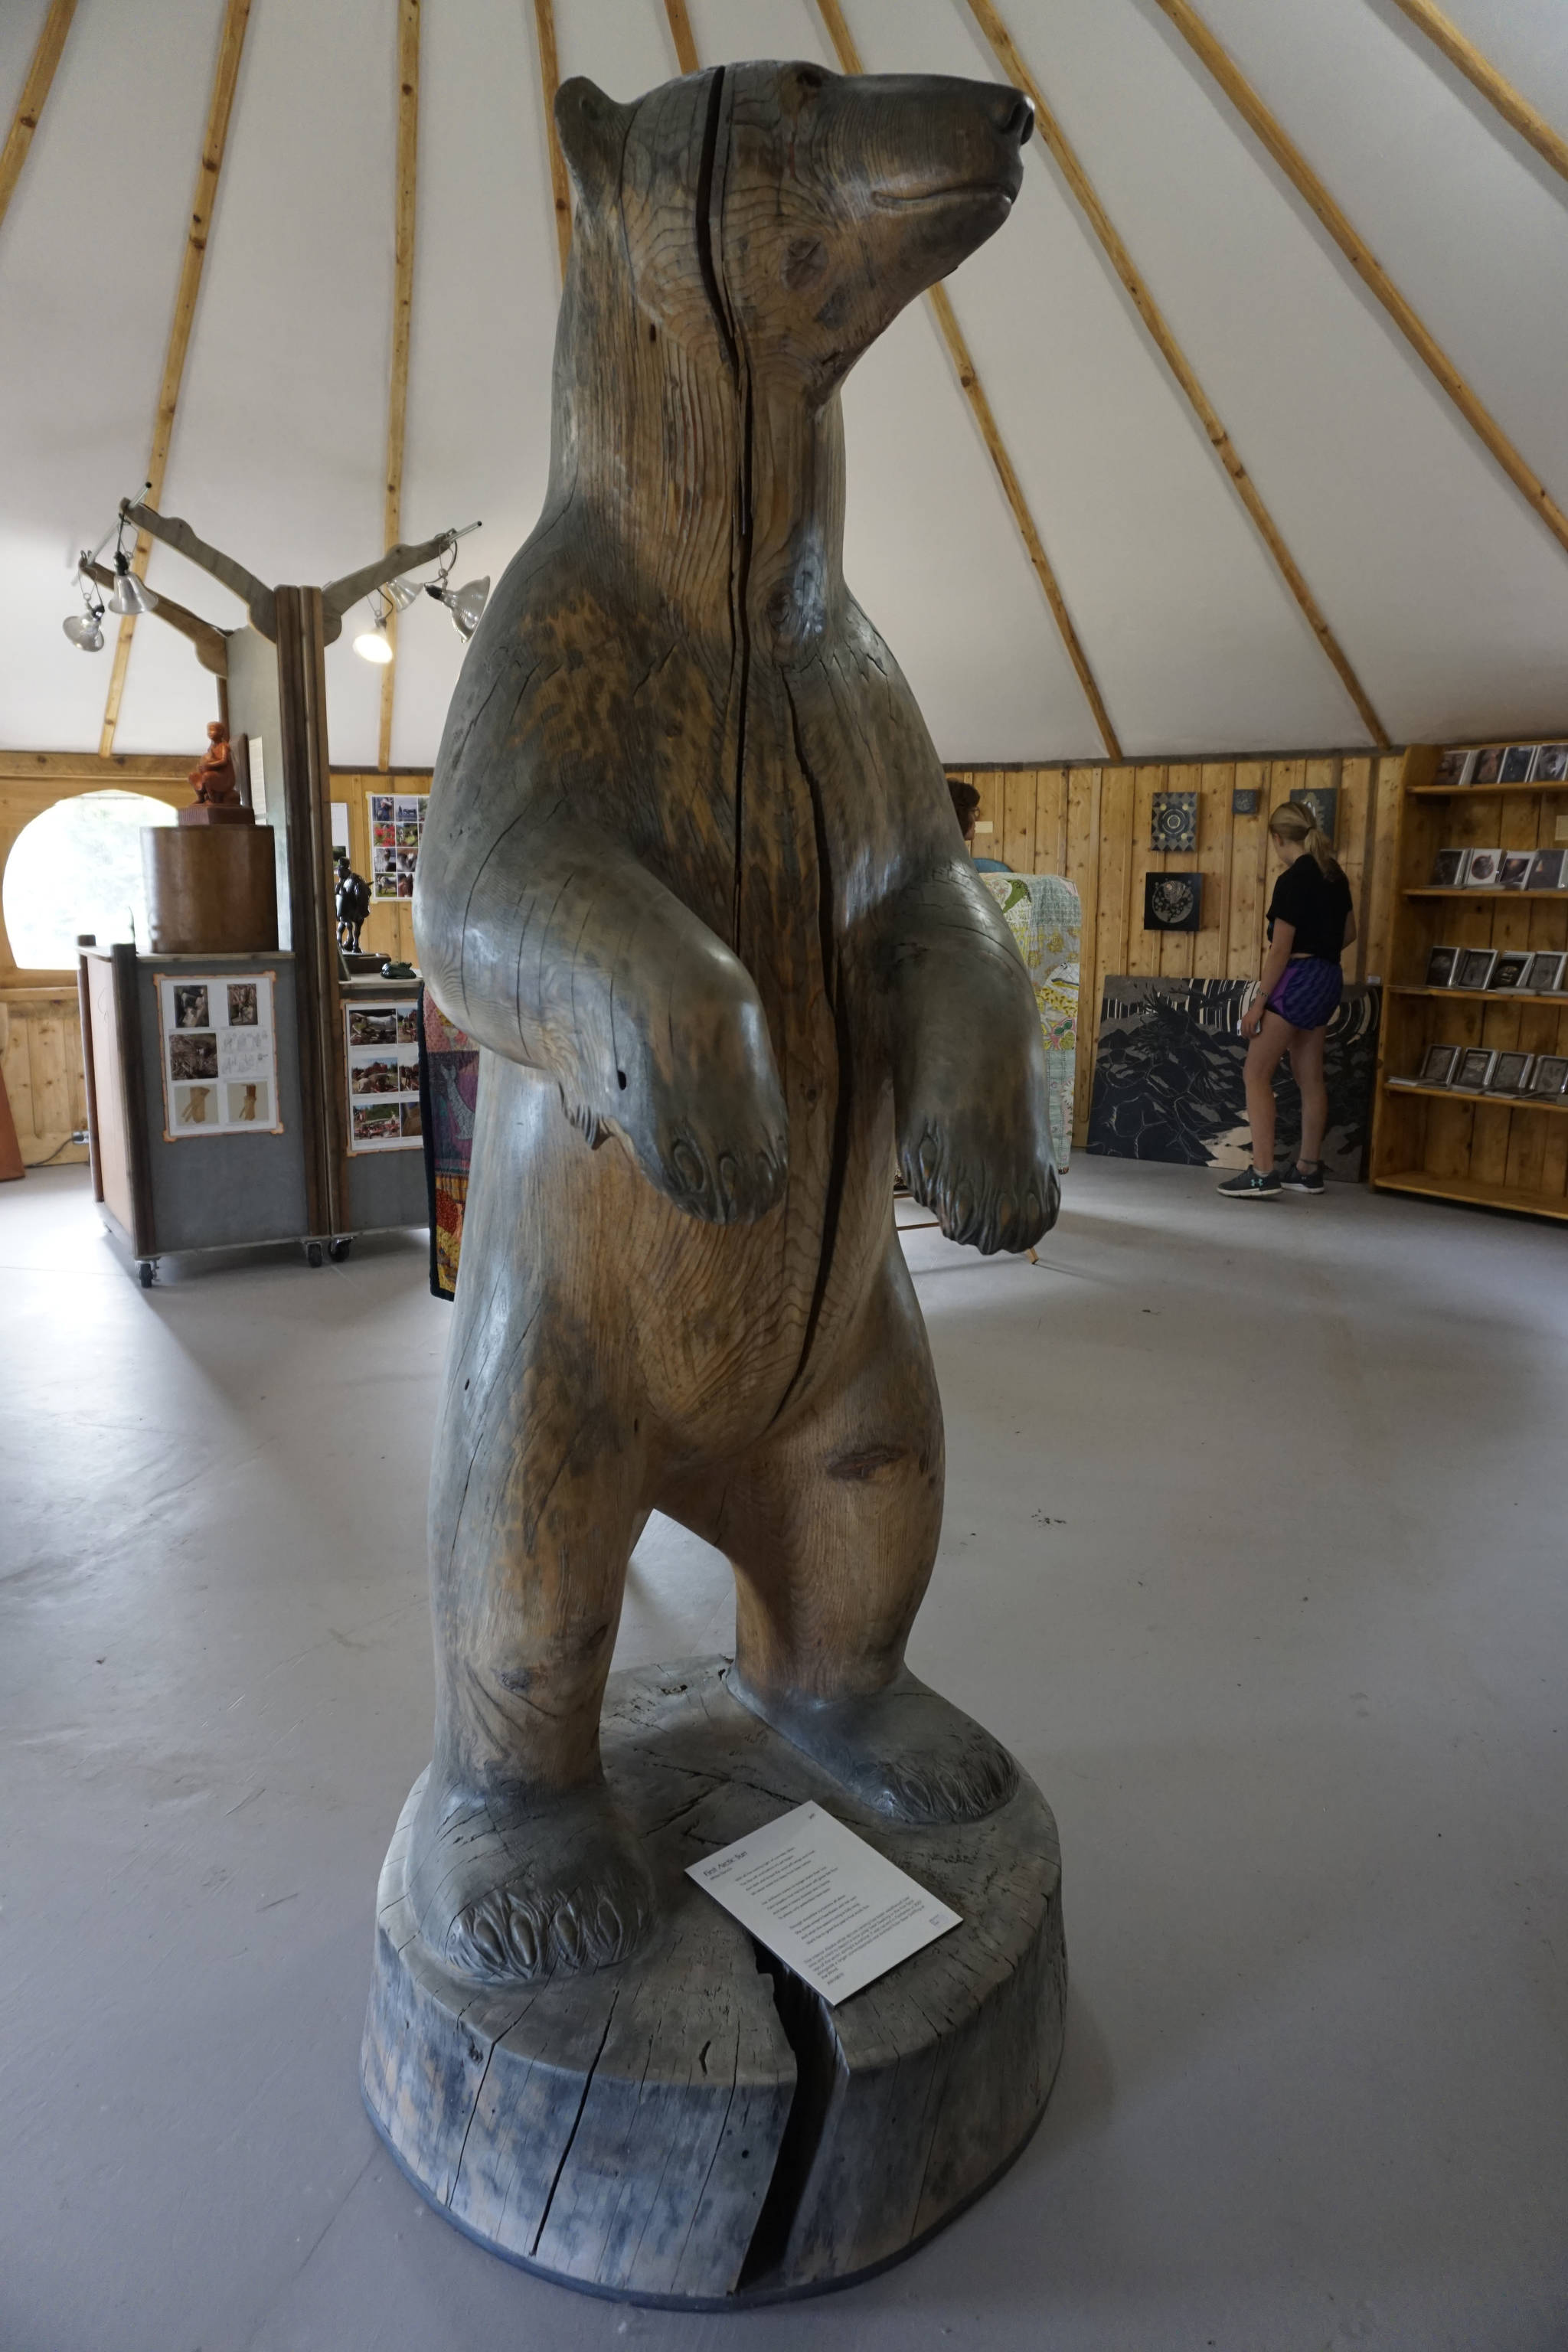 The Dean family's Creative Fire studios on Waterman Road includes their gallery, as seen here on a garden tour in July 2018 near Homer, Alaska. (Photo by Michael Armstrong/Homer News)